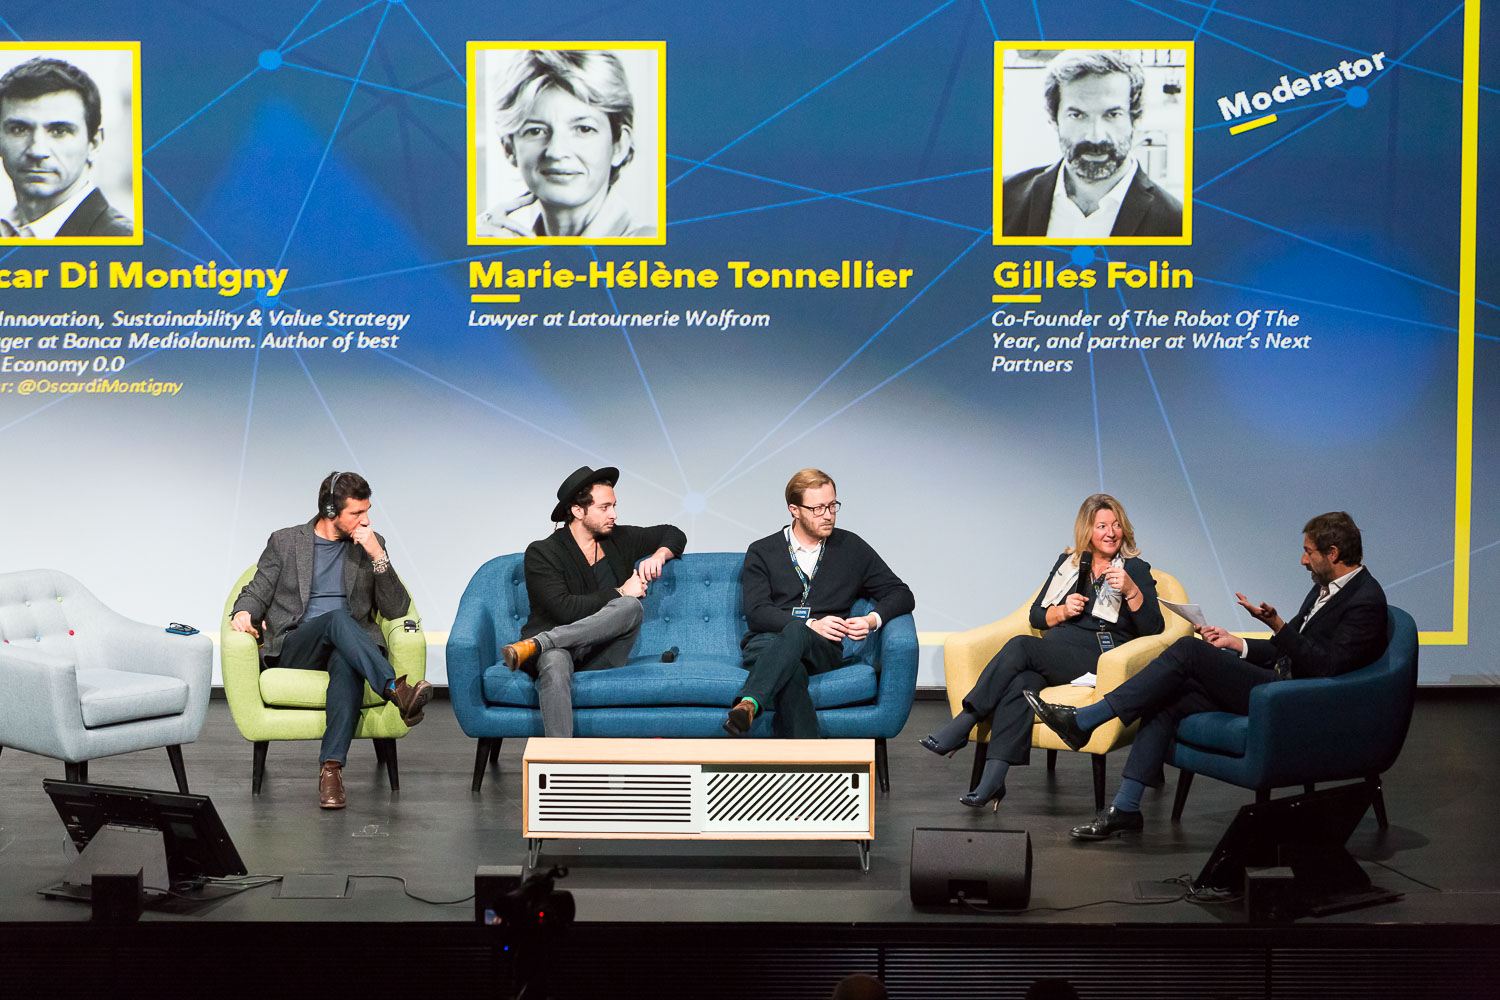 PANEL FOUNDING A BETTER FUTURE FOR HUMANS WITH AI AND ROBOTS  Speakers : Oscar  Di Montigny  – Chief Innovation, Sustainability & Value Strategy Manager at Banca Mediolanum . Author of best seller Economy 0.0, Rand  Hindi  - Data scientist and CEO of Snips, Pierre  Lebeau  - Founder at Keecker, Marie-Hélène  Tonnellier  - Lawyer at Latournerie WolfromP - Moderator : Gilles  Folin  – Co-Founder of The Robot Of The Year, and partner at What's Next Partners. Photo Svend Andersen